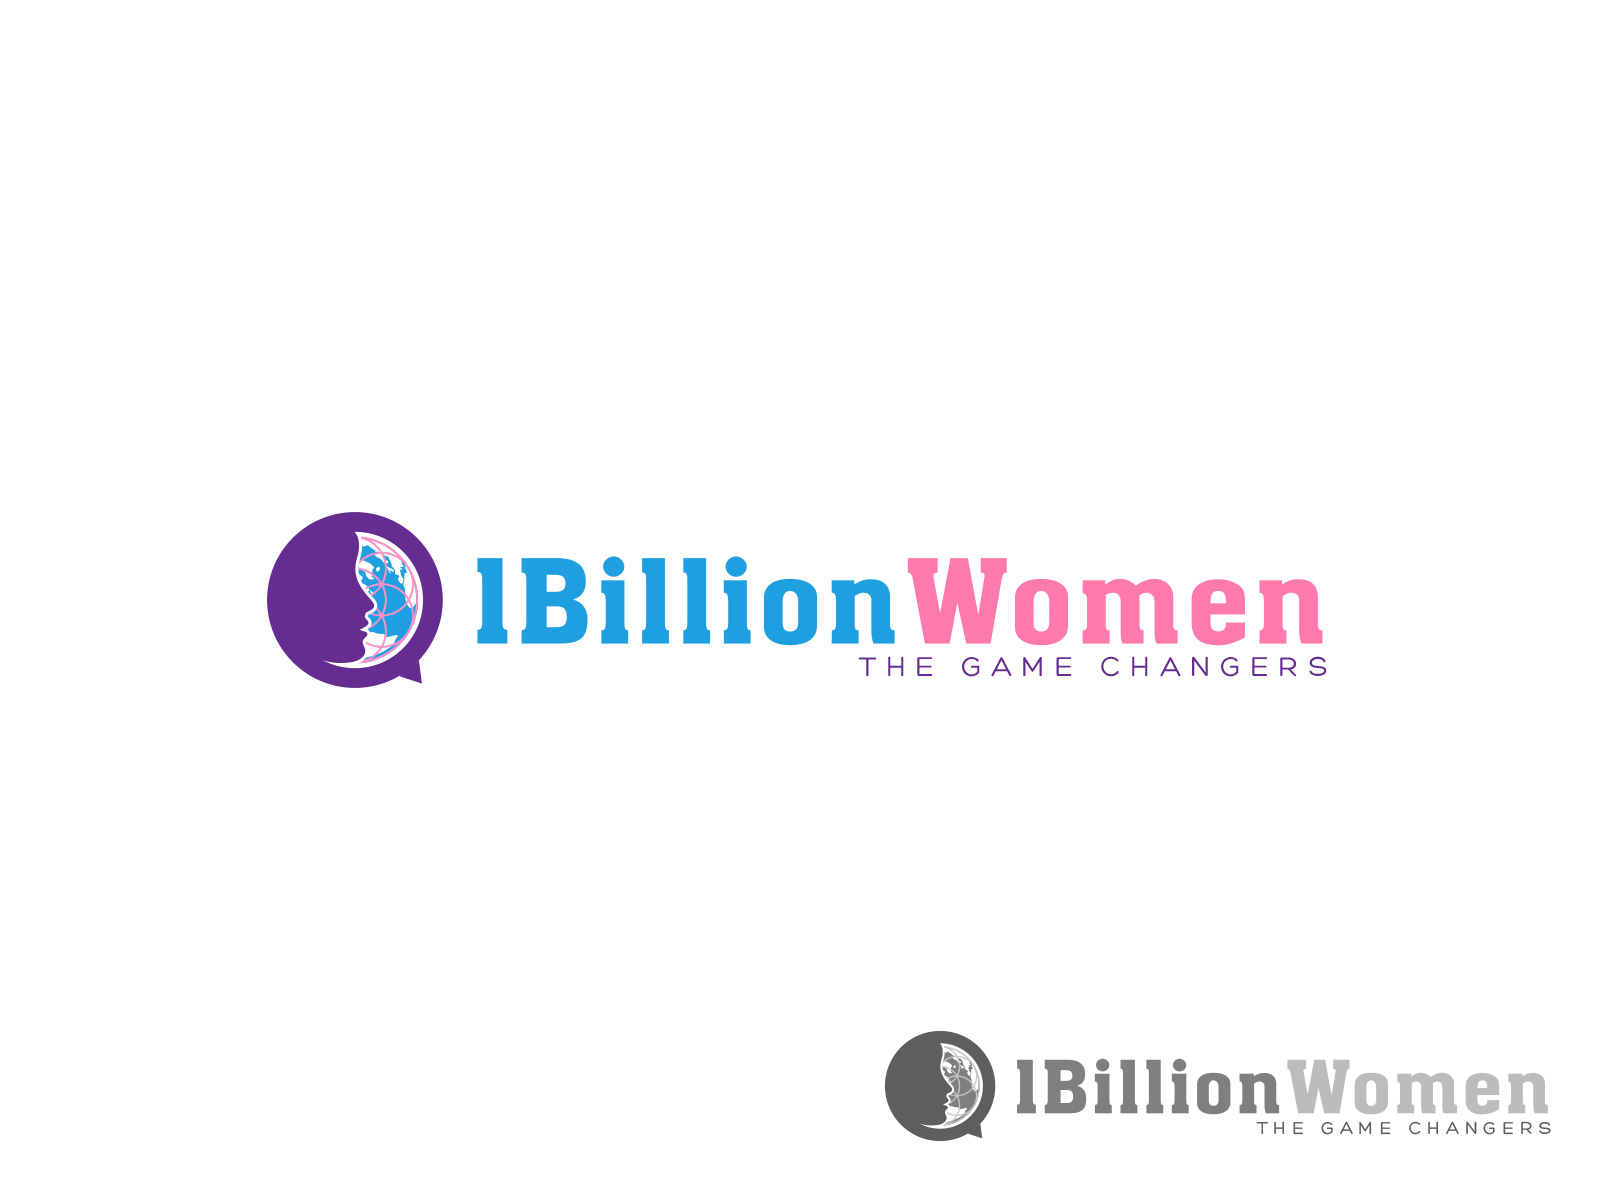 Logo Design by olii - Entry No. 143 in the Logo Design Contest Fun Logo Design for 1BillionWomen.